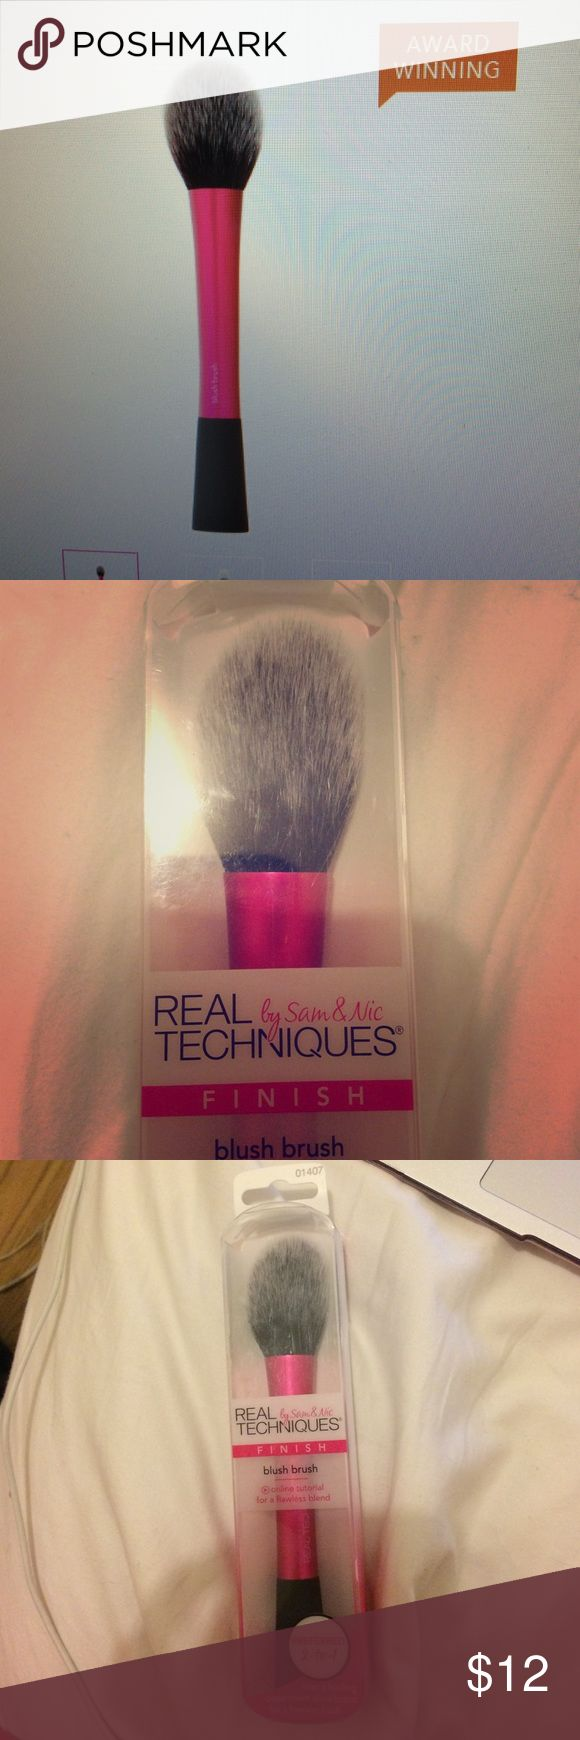 Award Winning Blush Brush Blush brush is custom-cut to contour and define cheeks for flawlessly blended, high defined results. *ideal for cream or powder blush. Real Techniques by Sam & Nic Makeup Brushes & Tools